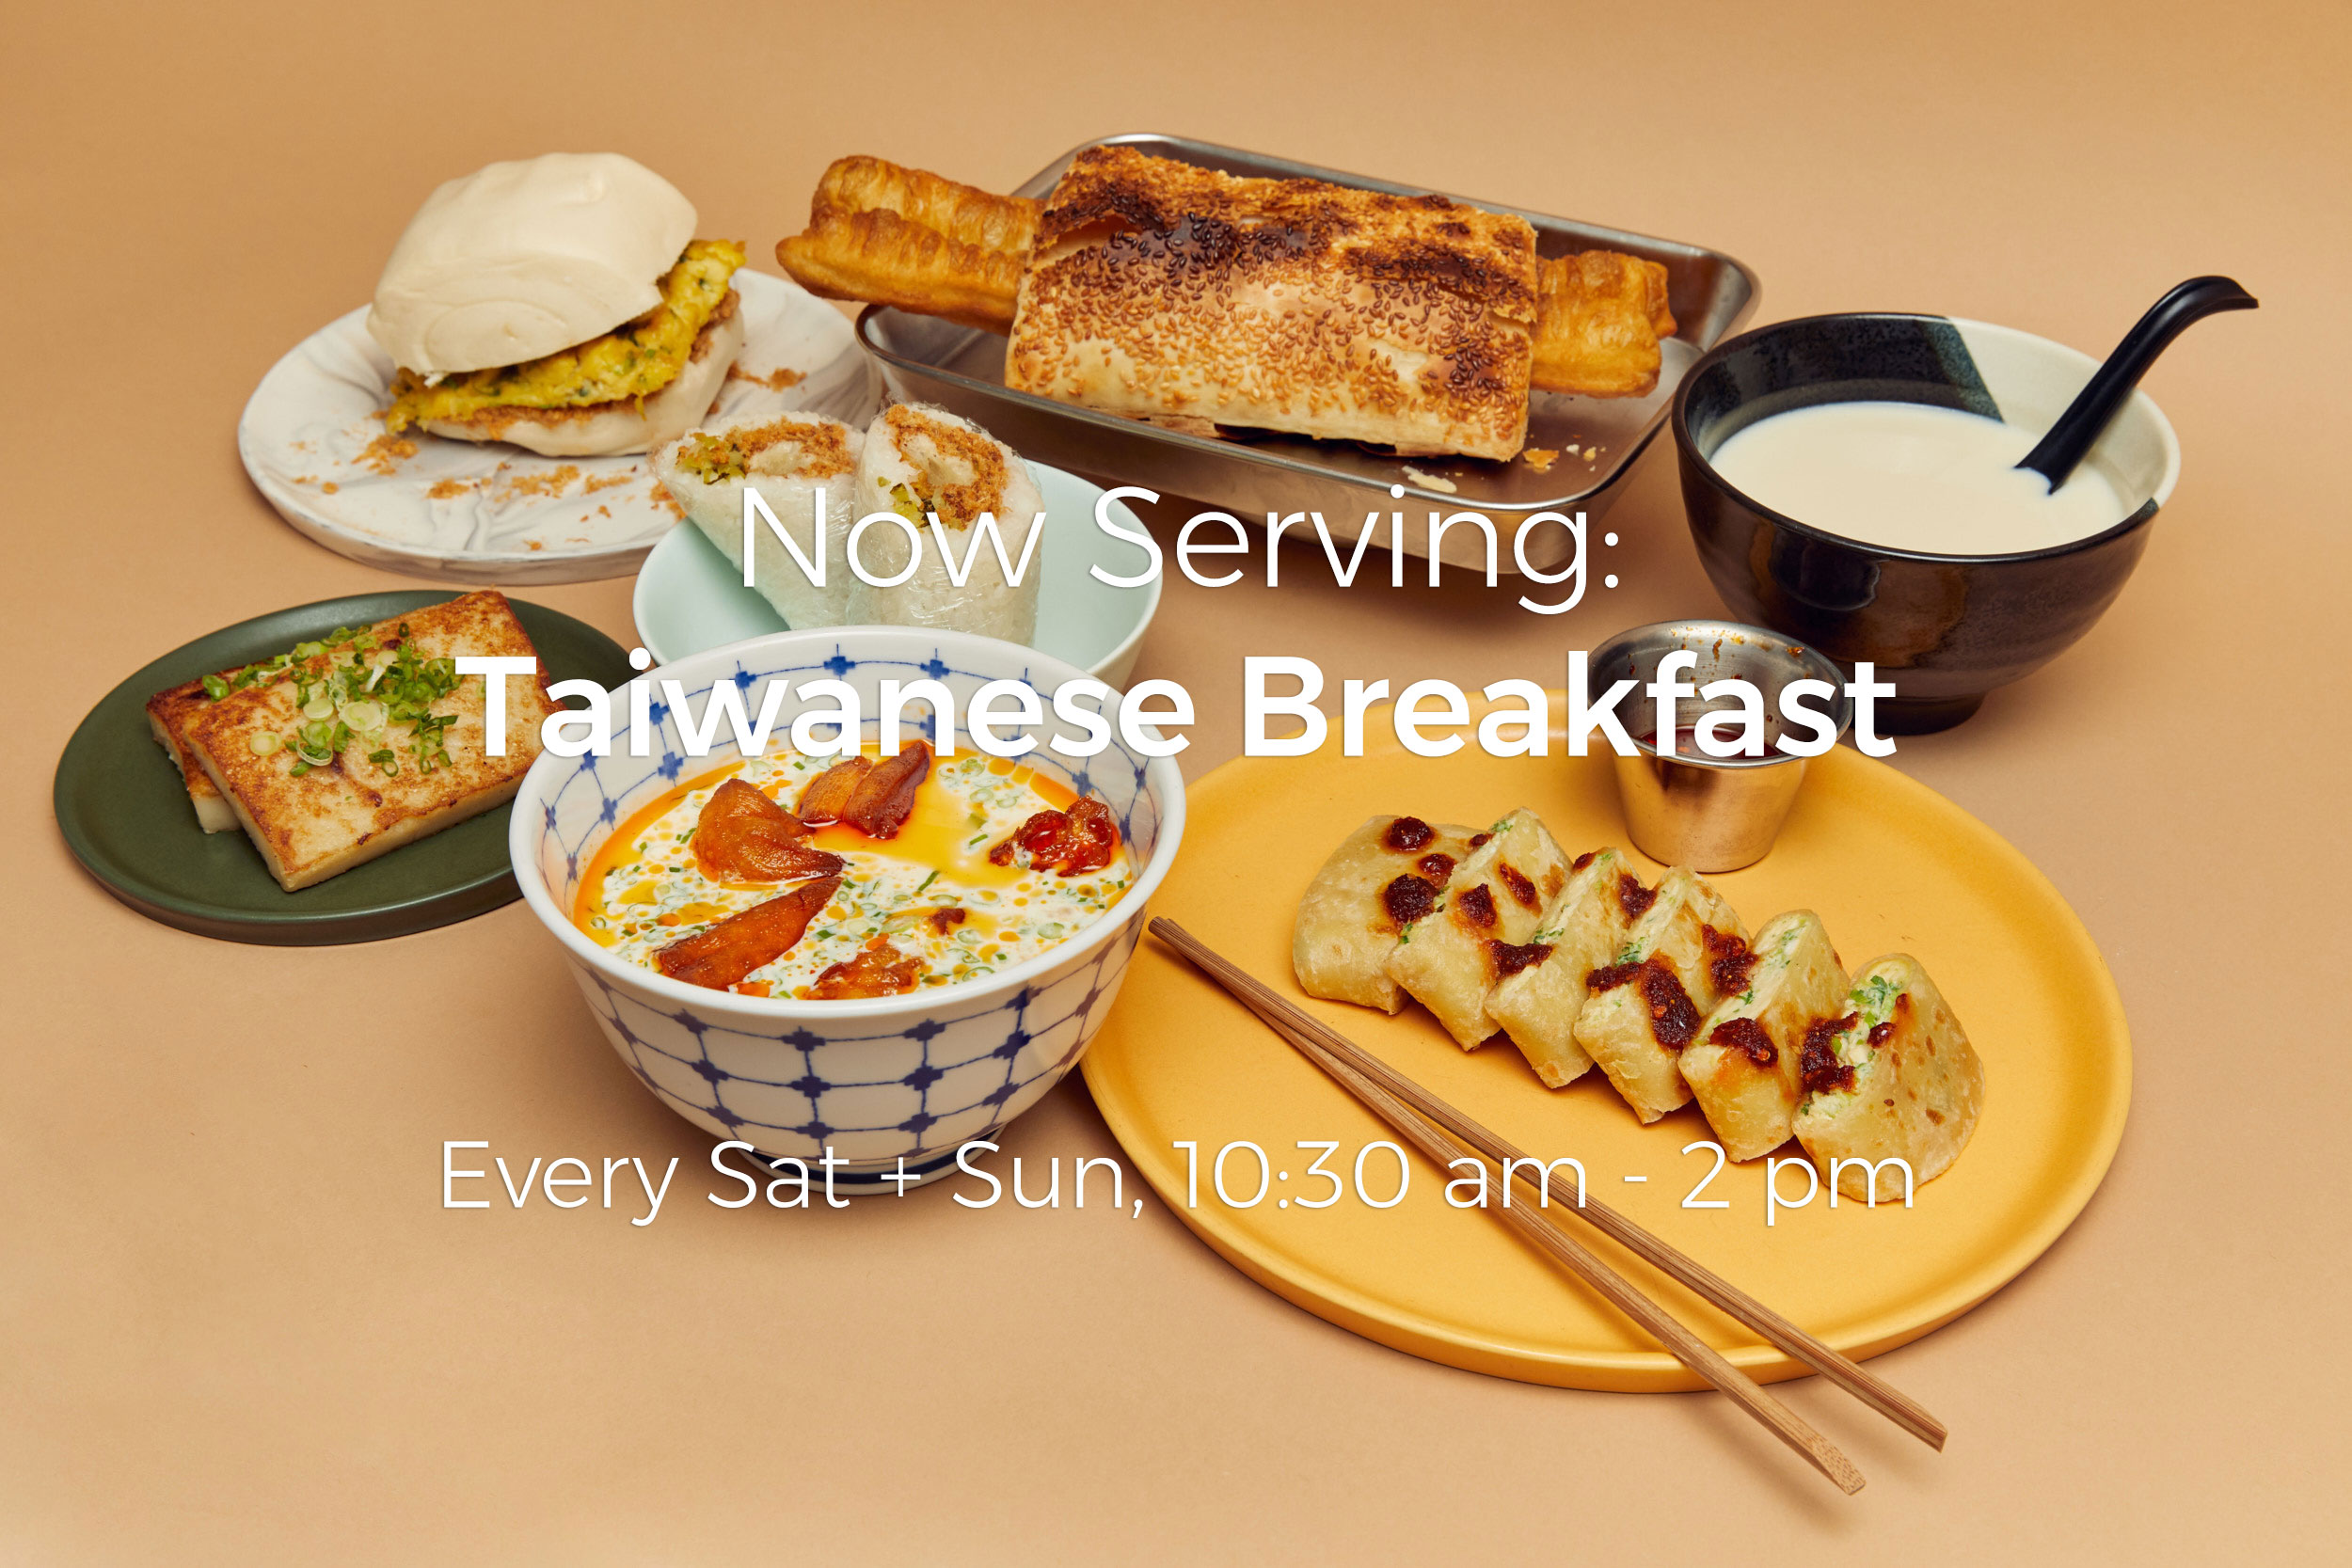 Now Serving: Taiwanese Breakfast